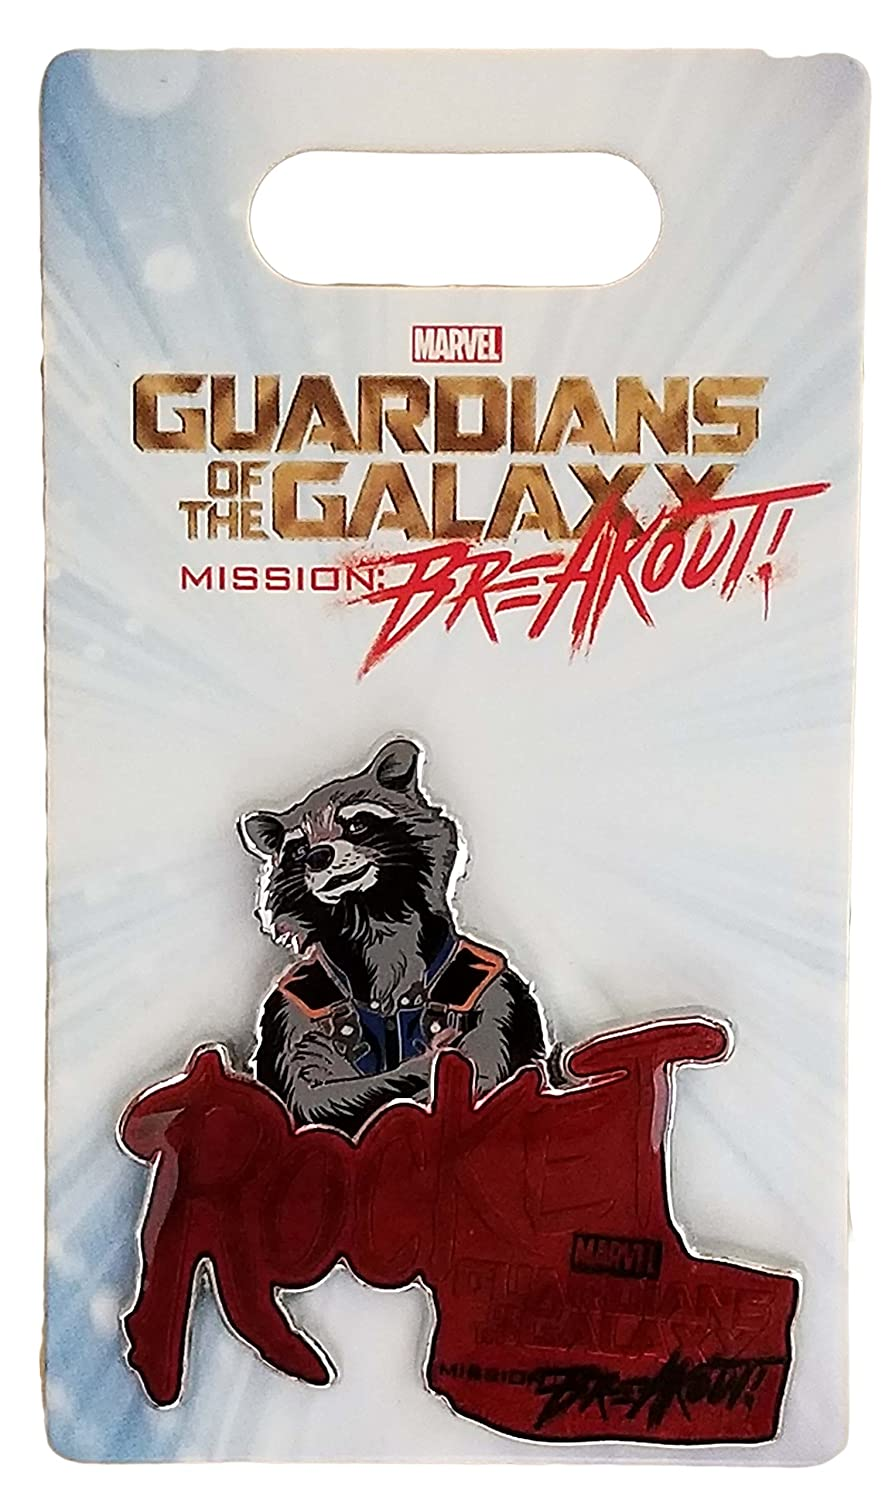 Disney Pin - Marvel Guardians of the Galaxy - Mission: Breakout - Rocket Raccoon